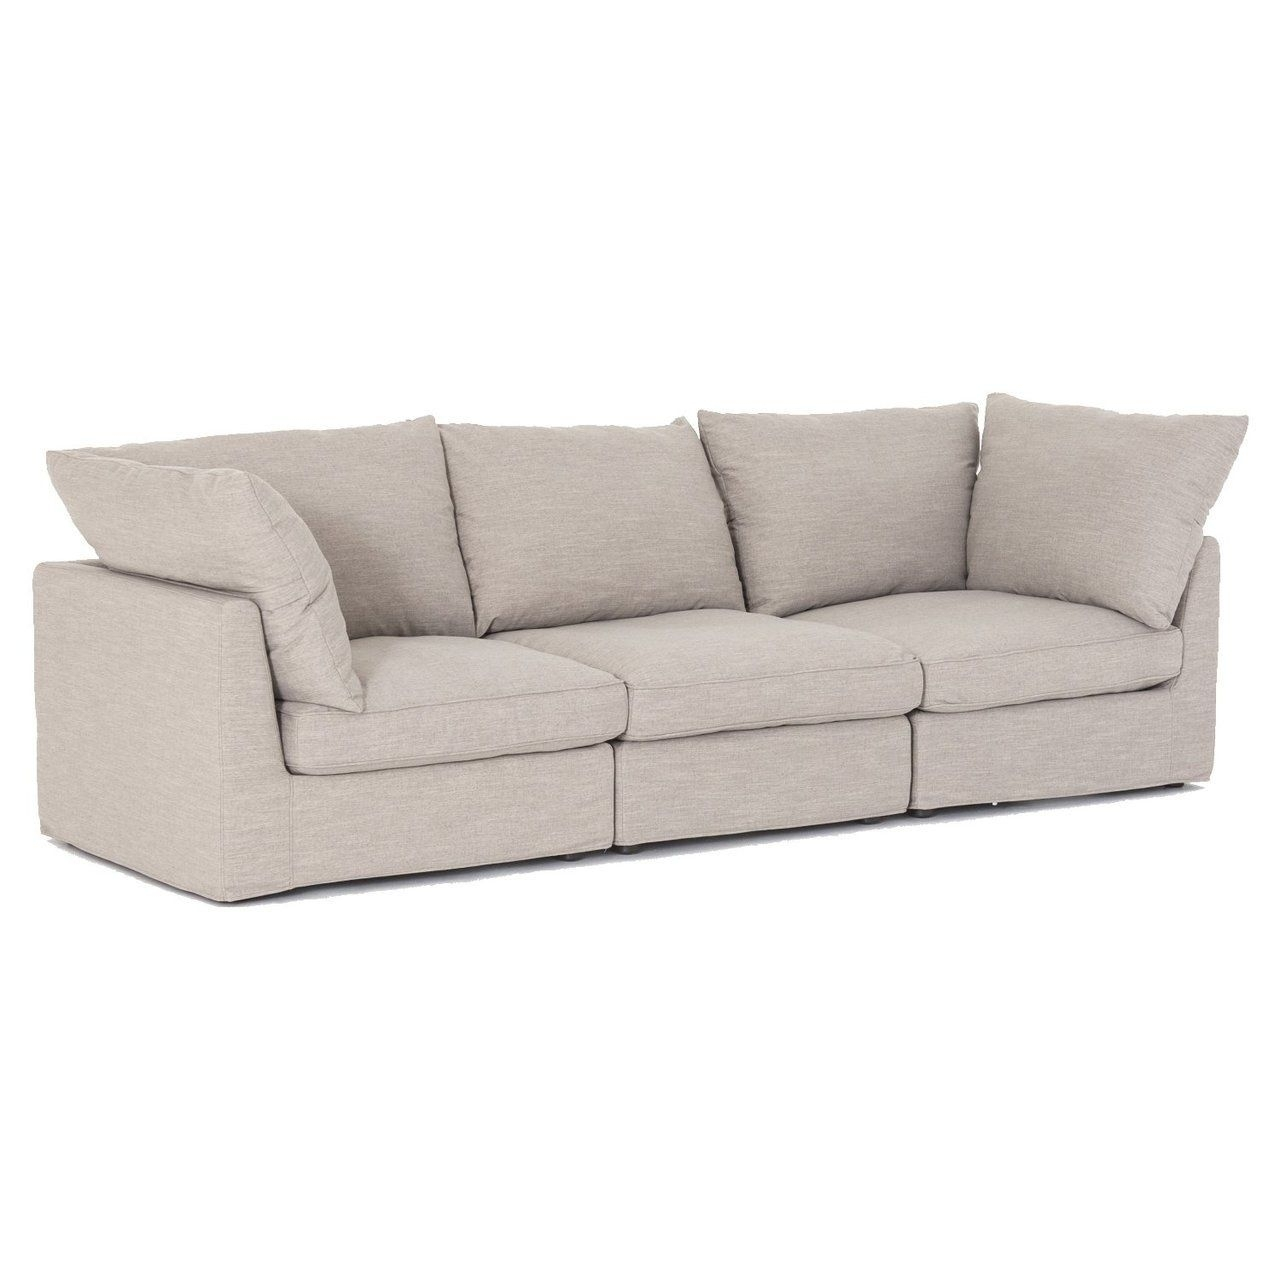 Harper Foam 3 Piece Sectional W/raf Chaise Pertaining To Aquarius Light Grey 2 Piece Sectionals With Raf Chaise (Image 12 of 25)